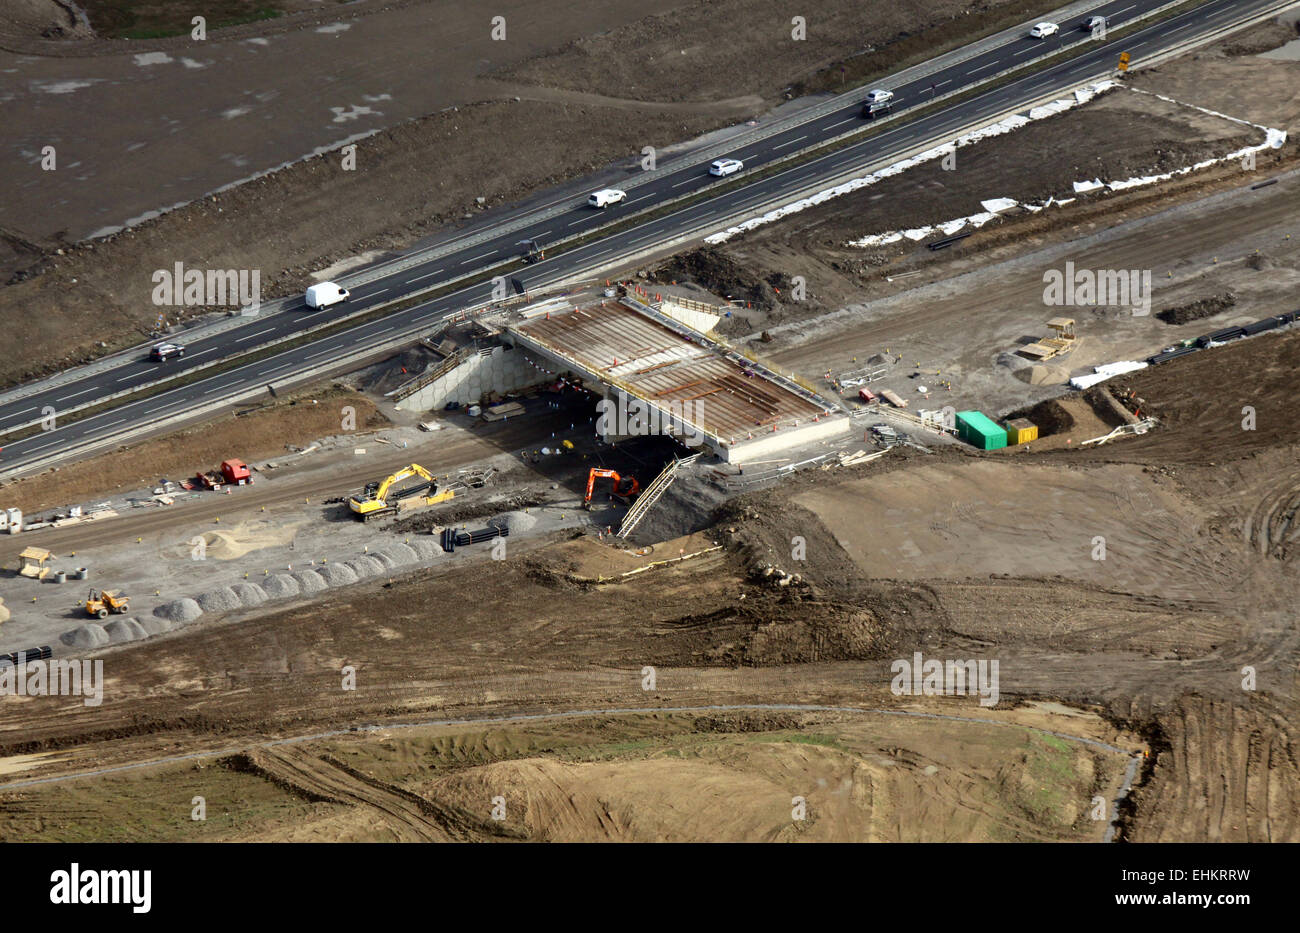 aerial view of A1 motorway construction road works in Yorkshire, UK